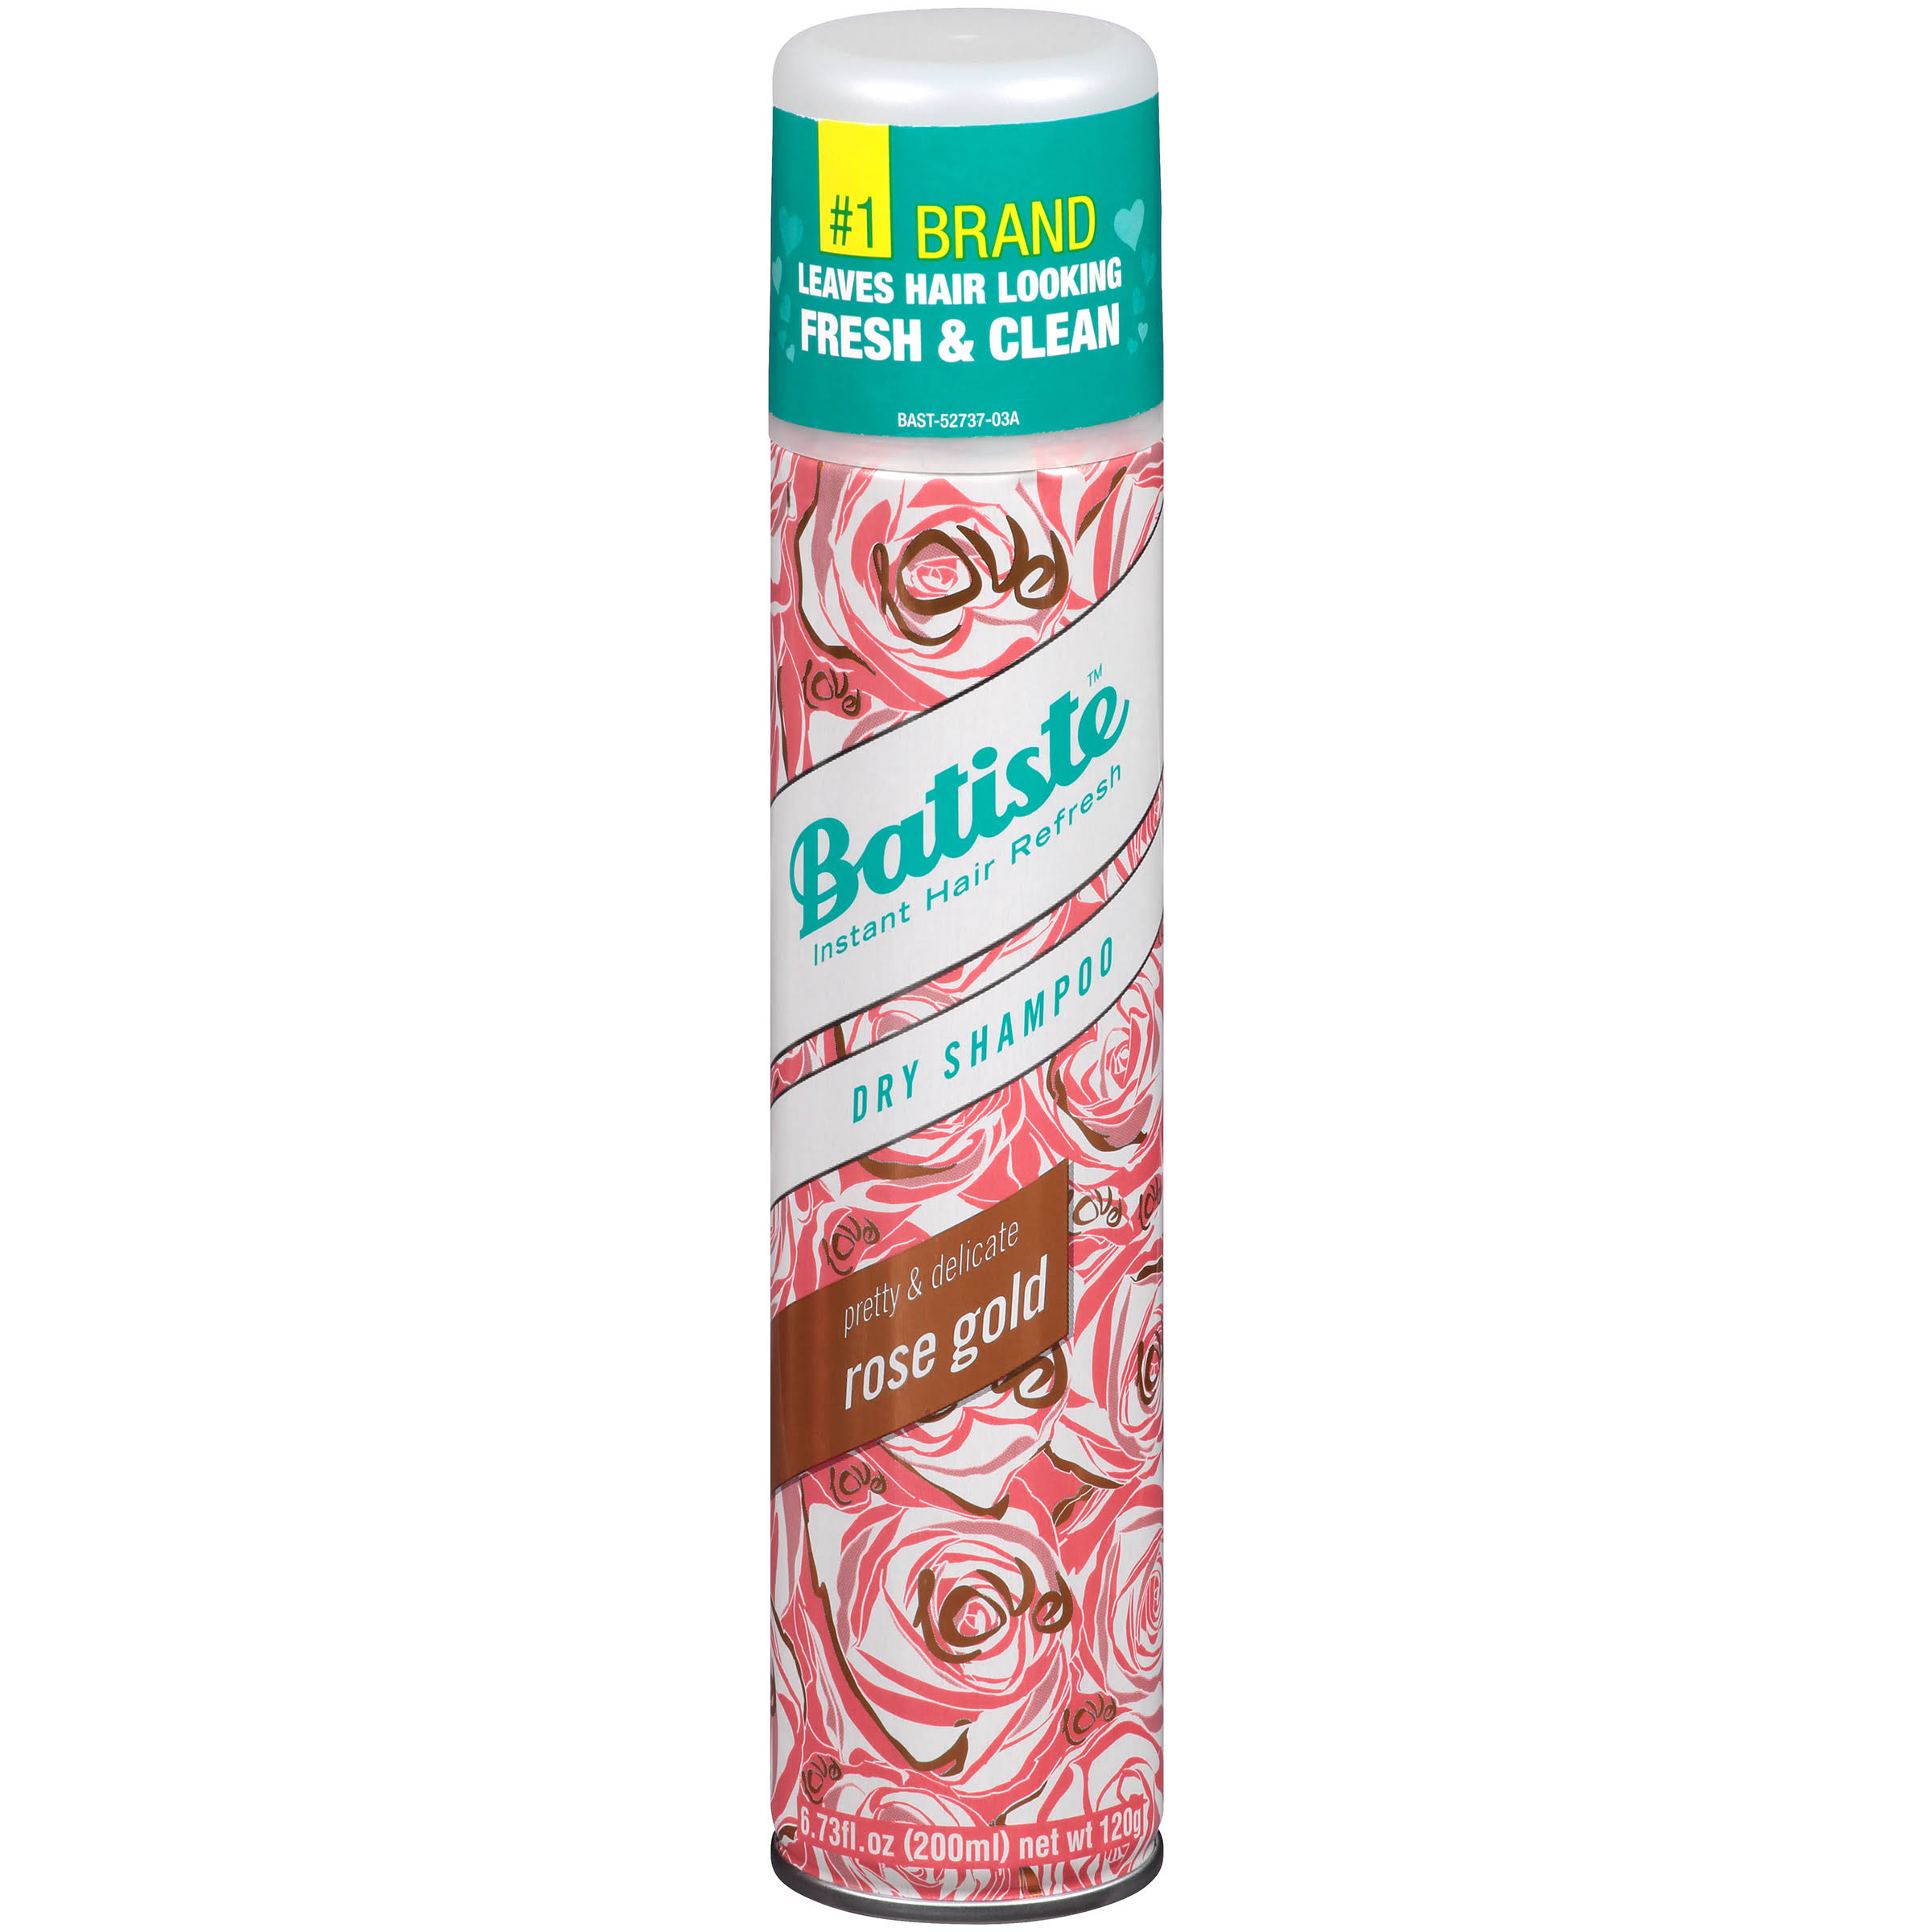 Batiste Dry Shampoo - Rose Gold, 200ml